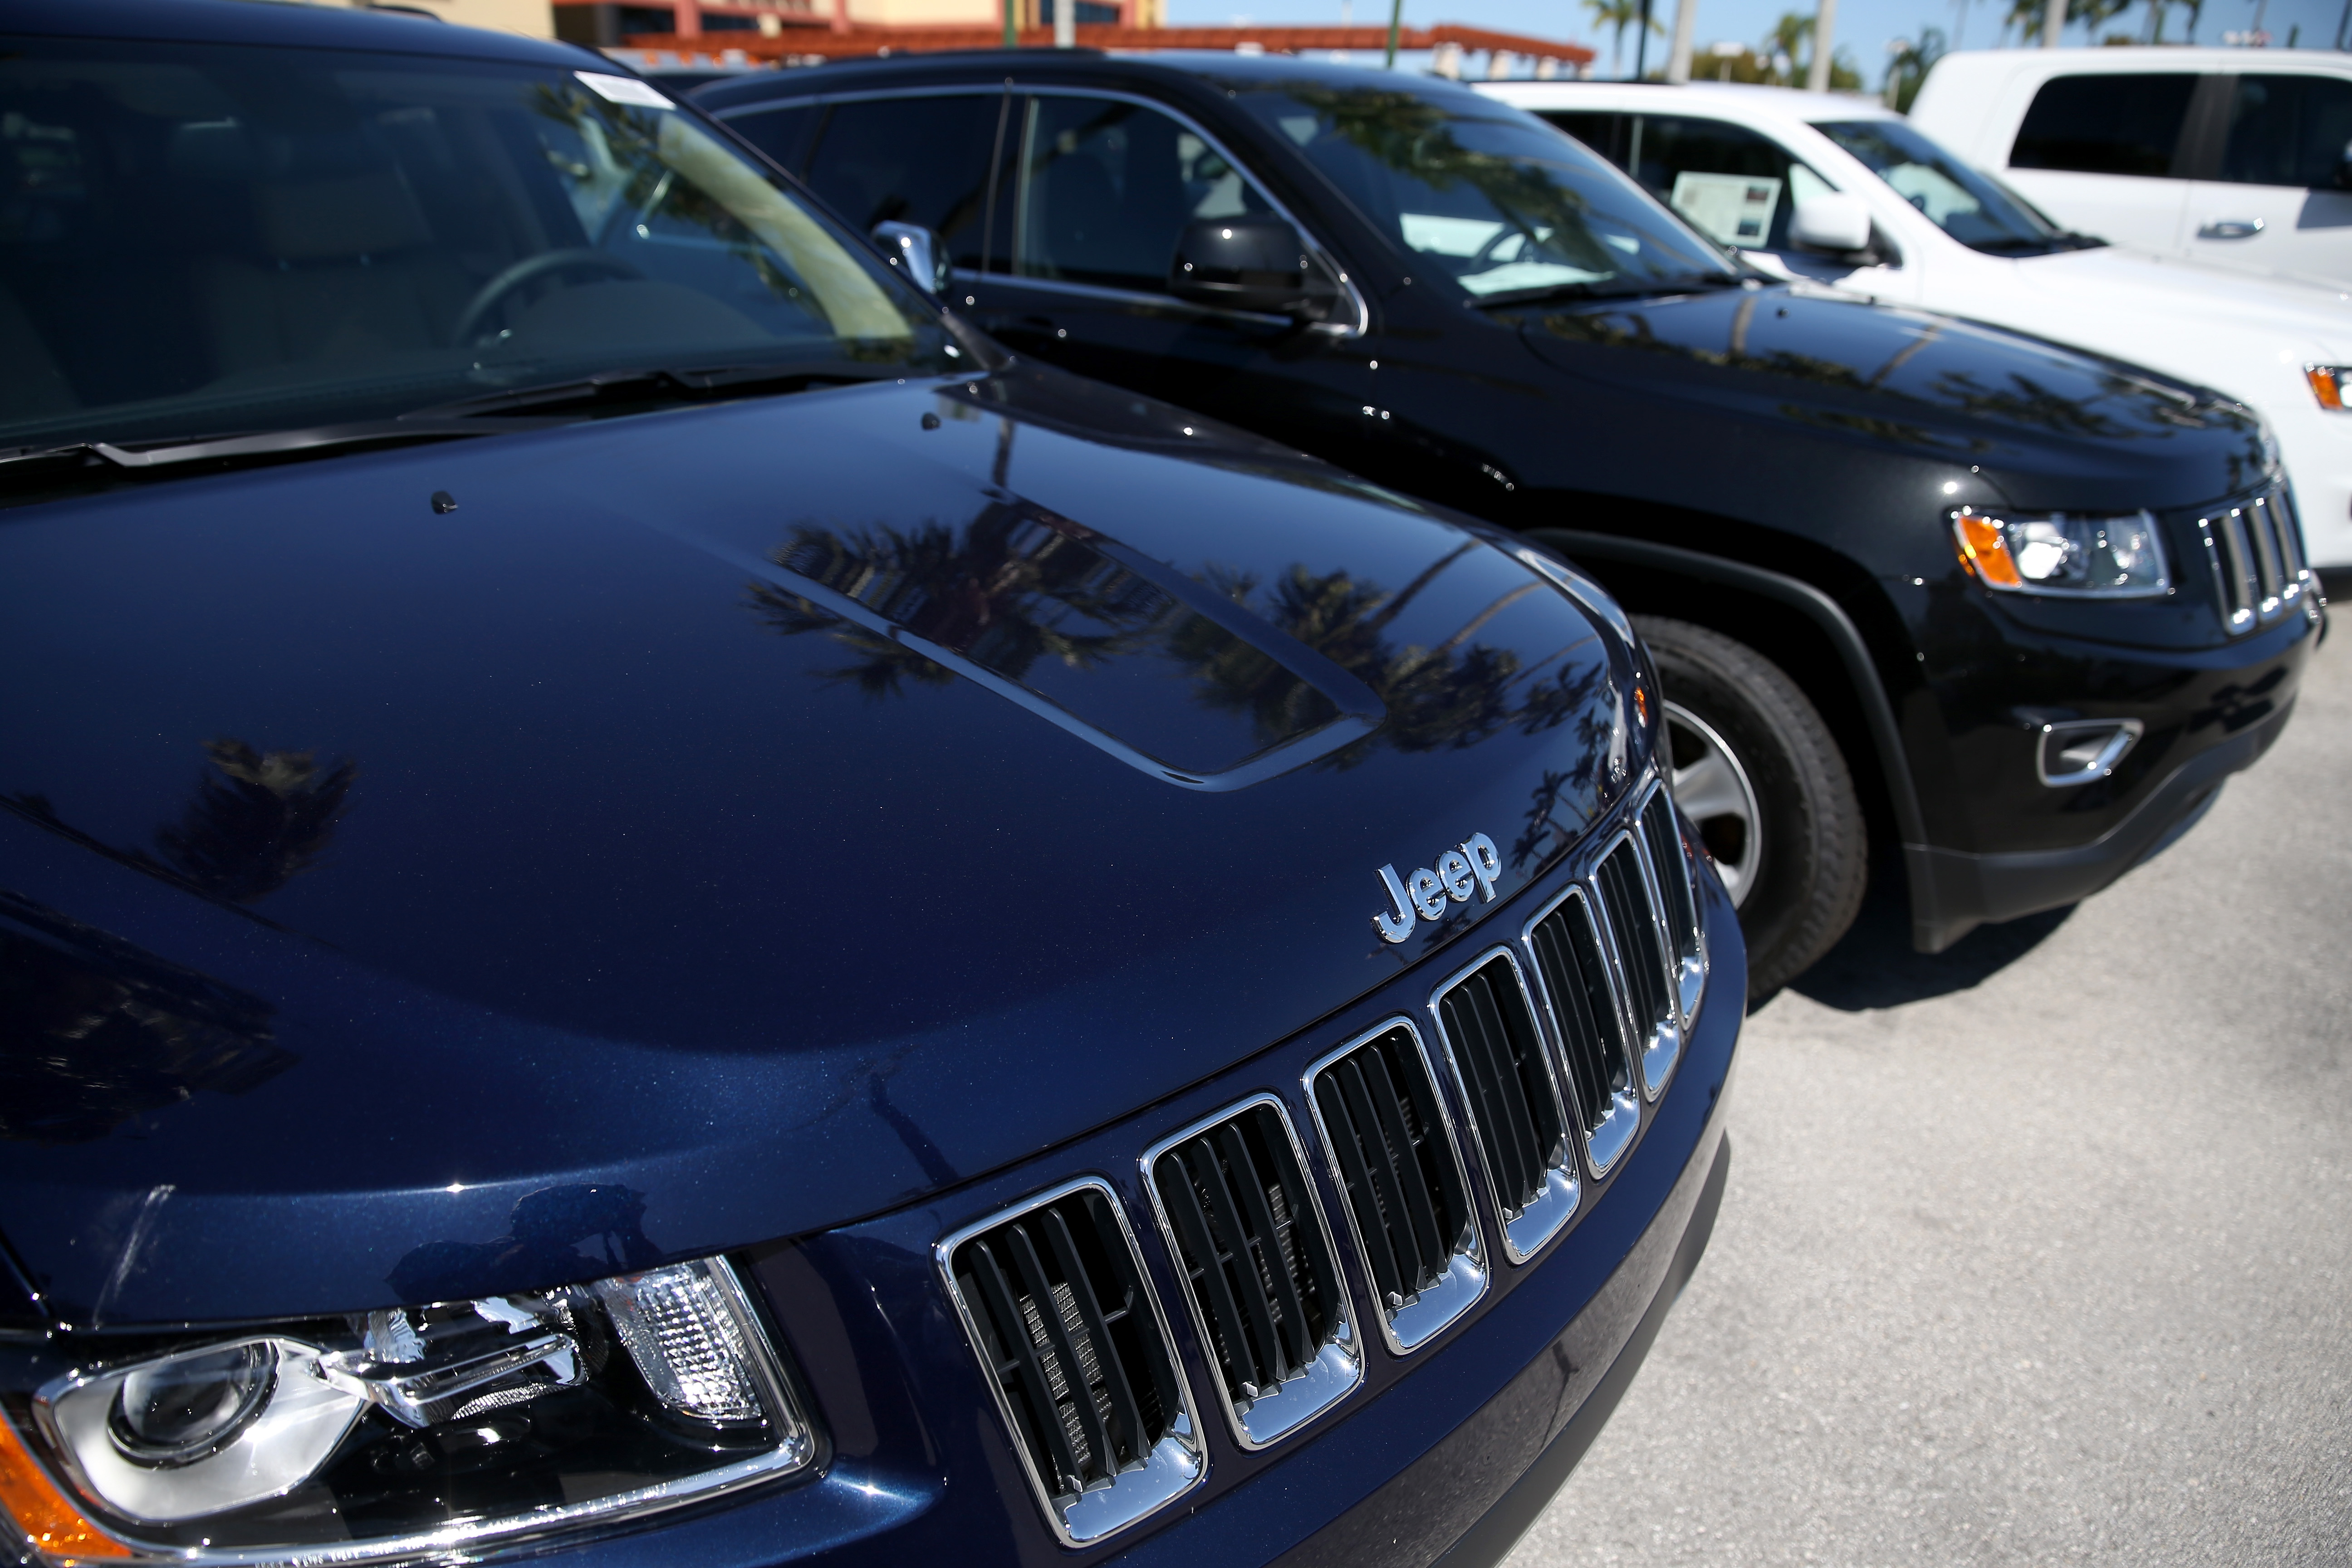 2014 Jeep Cherokees are seen on a sales lot on April 2, 2014 in Miami, Florida.